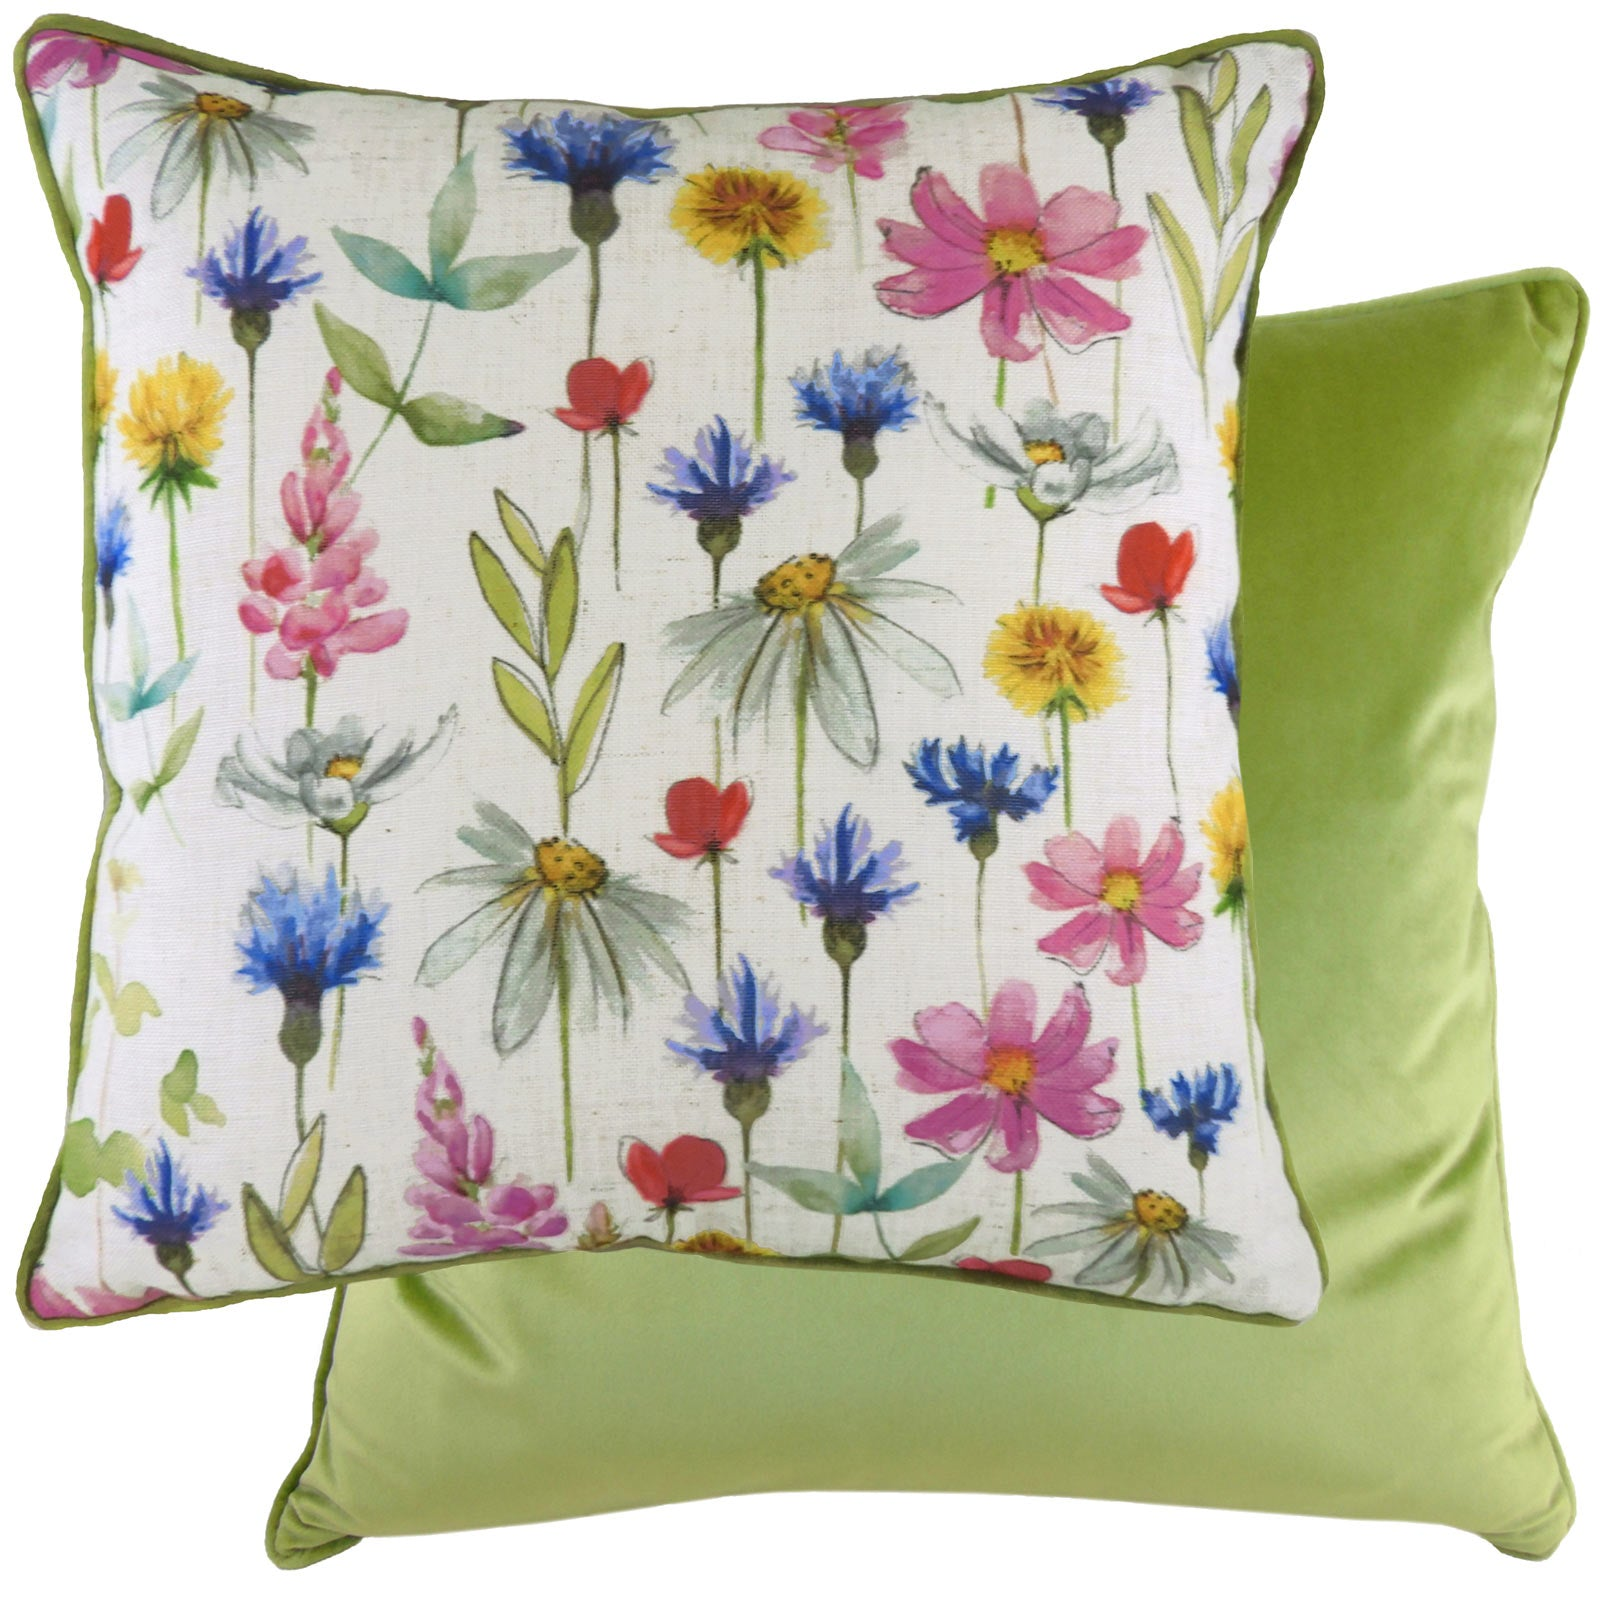 Wild Flowers Sophia Floral Multicolour Cushion Covers 17'' x 17'' -  - Ideal Textiles